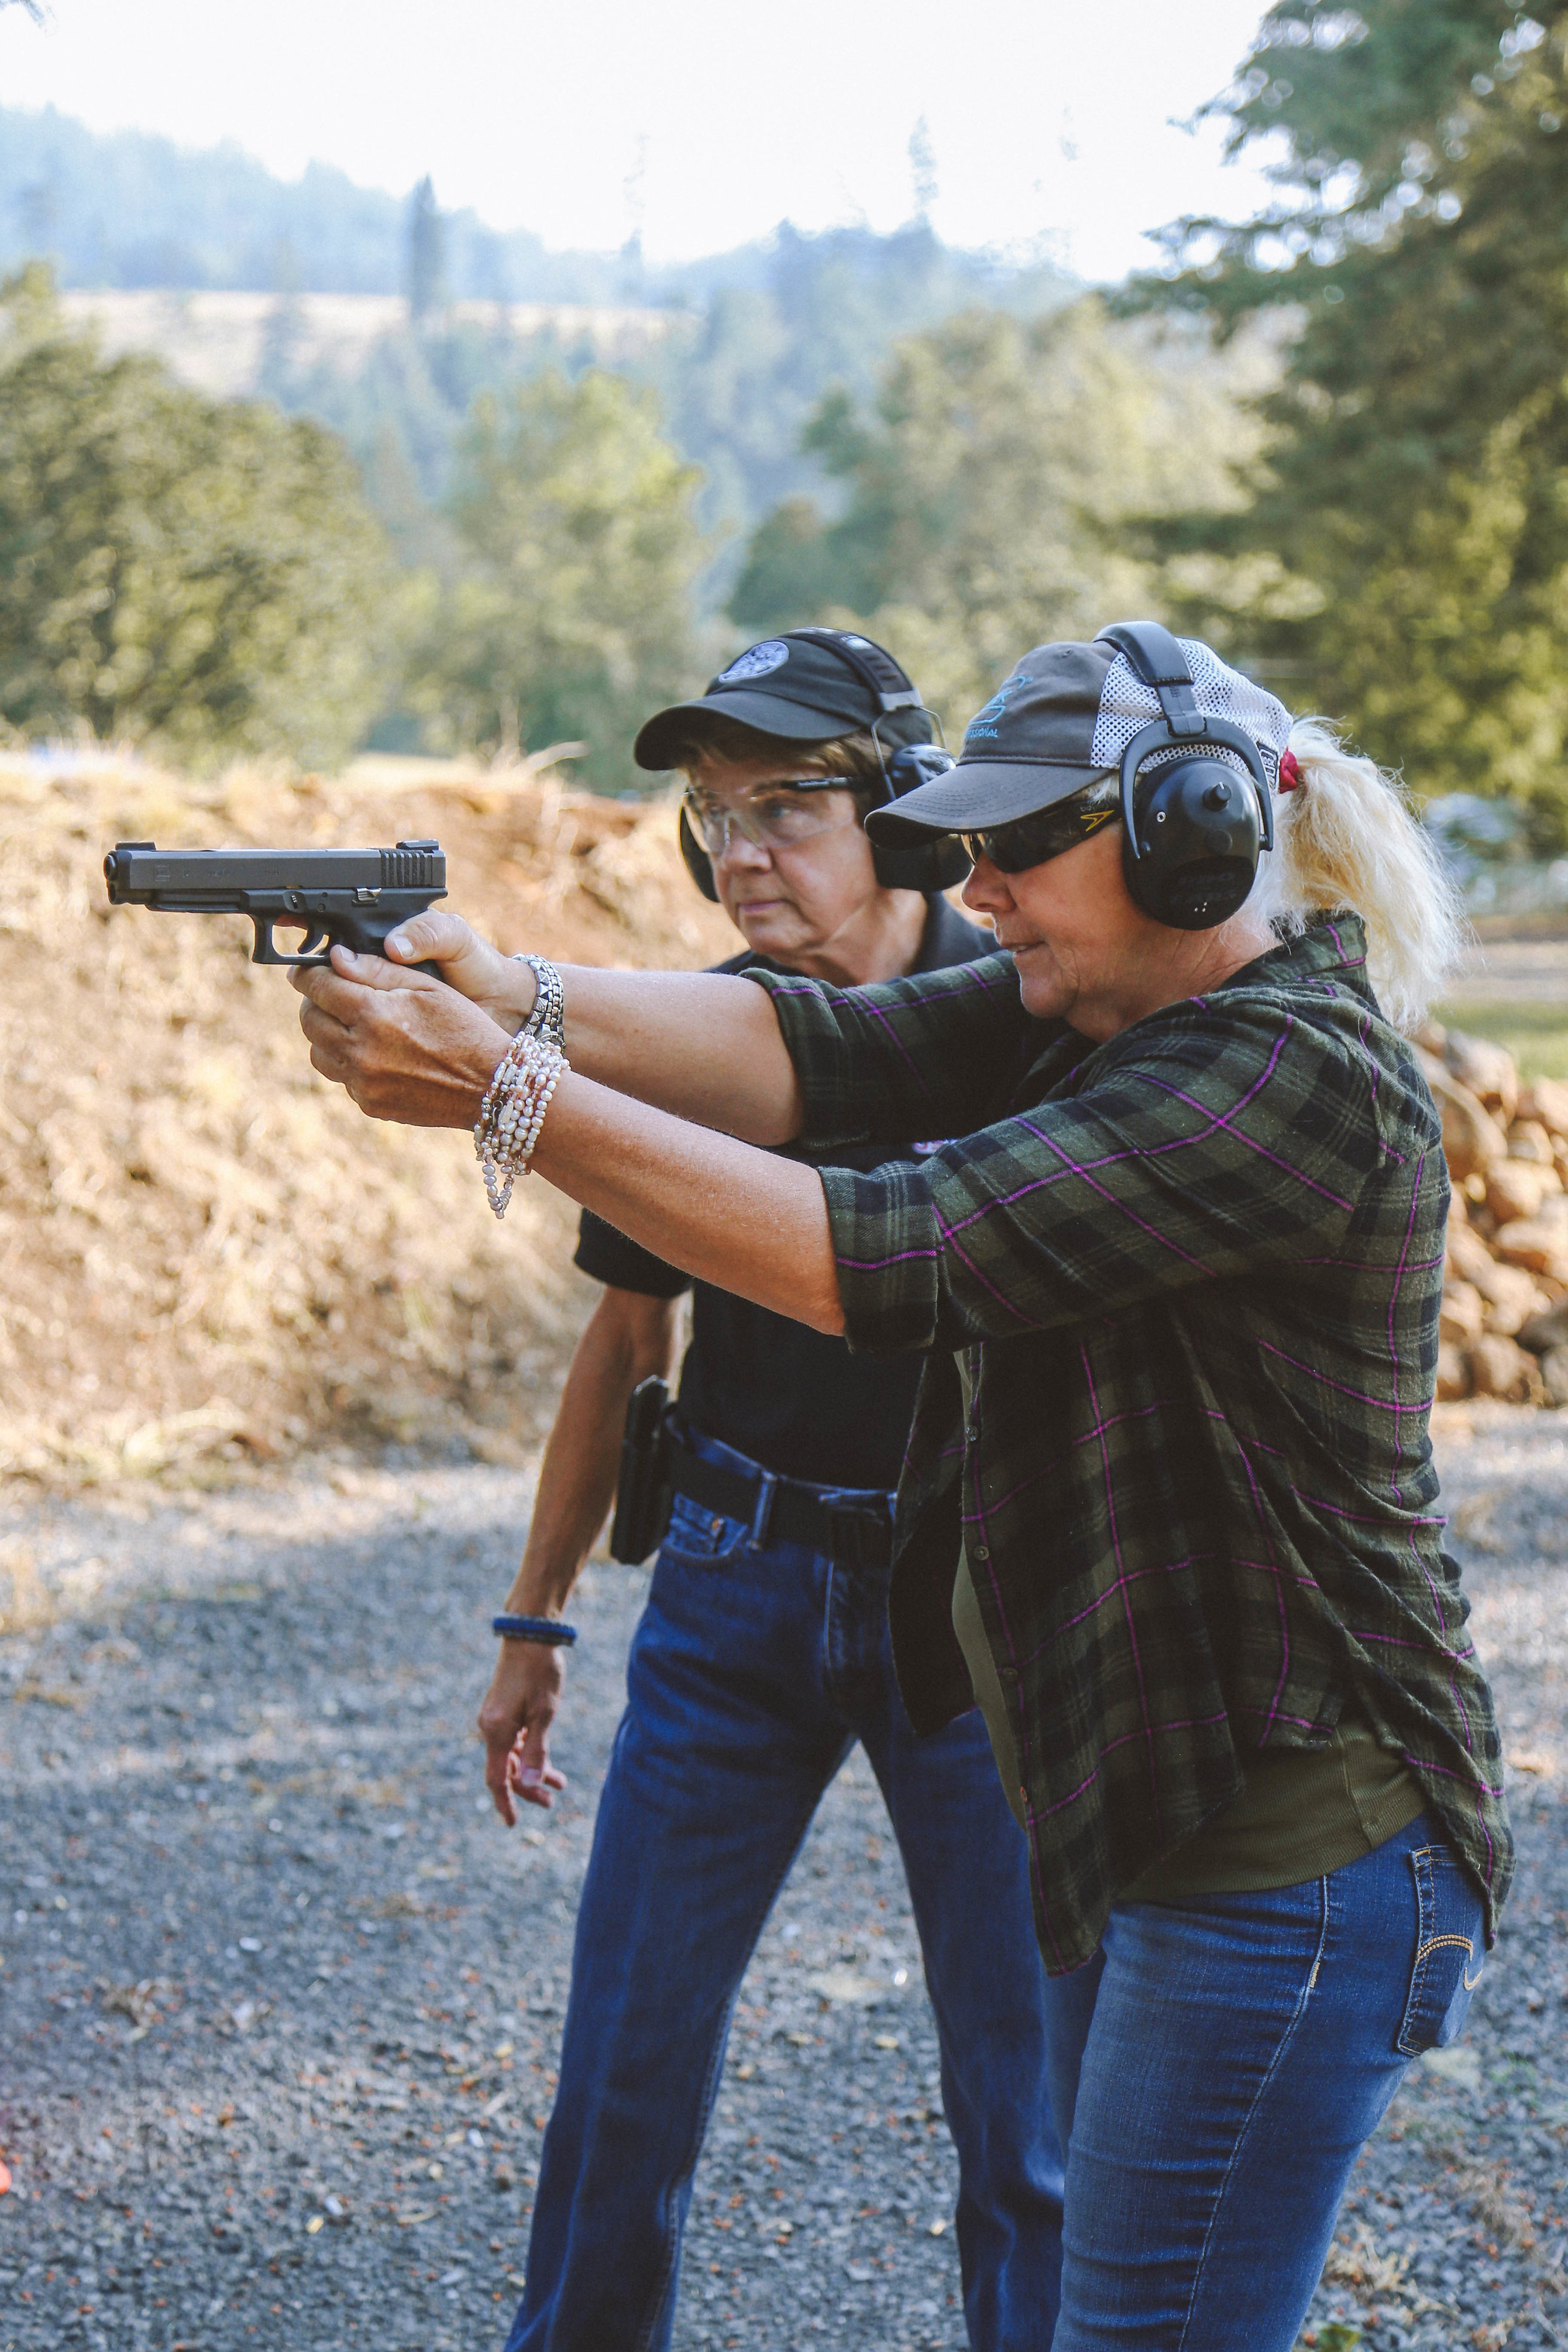 Carol helps student with proper form at the firearm range.